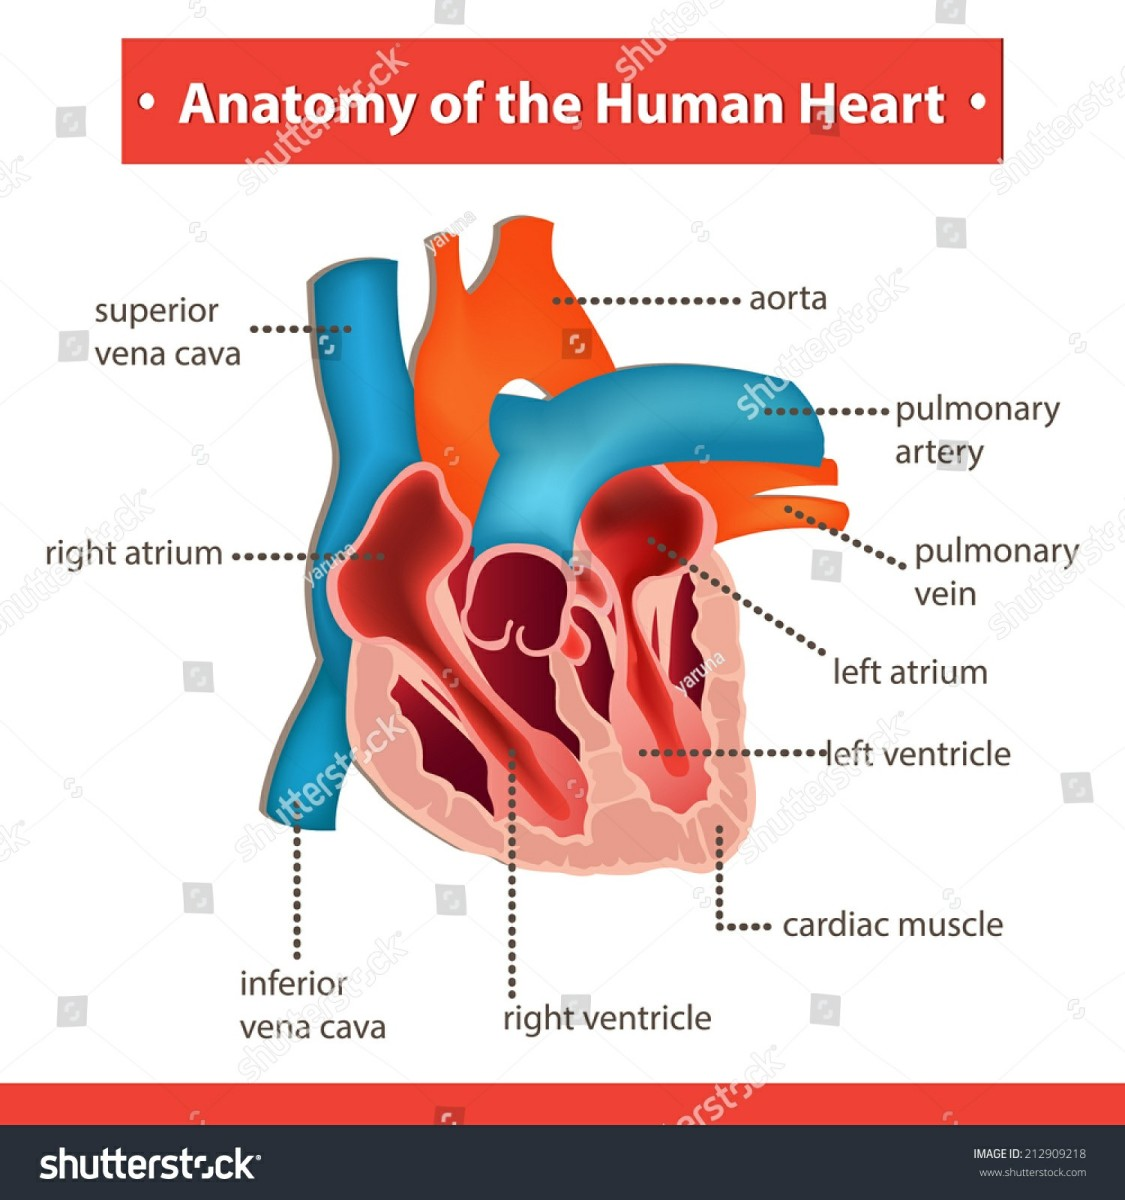 Symptoms of Children's Heart Defects - VSD and SVT: Our Experience